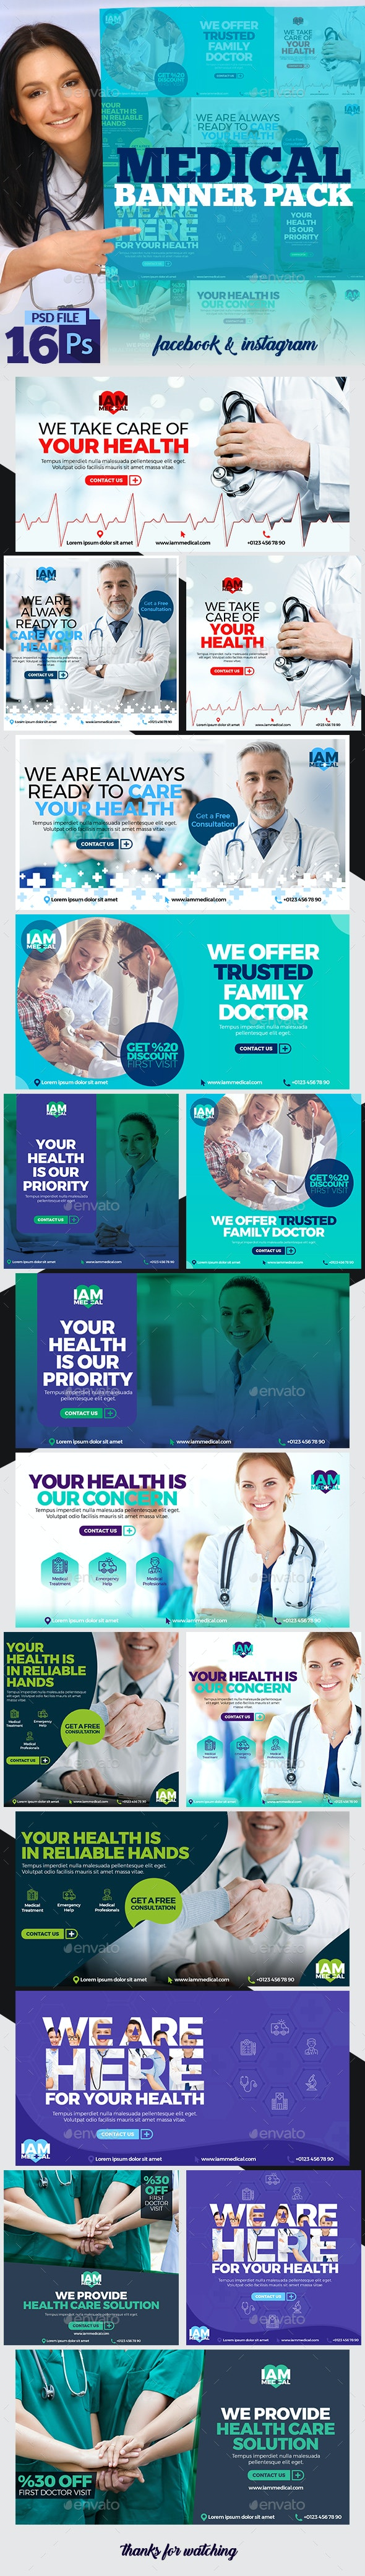 Medical Banner Pack - Banners & Ads Web Elements